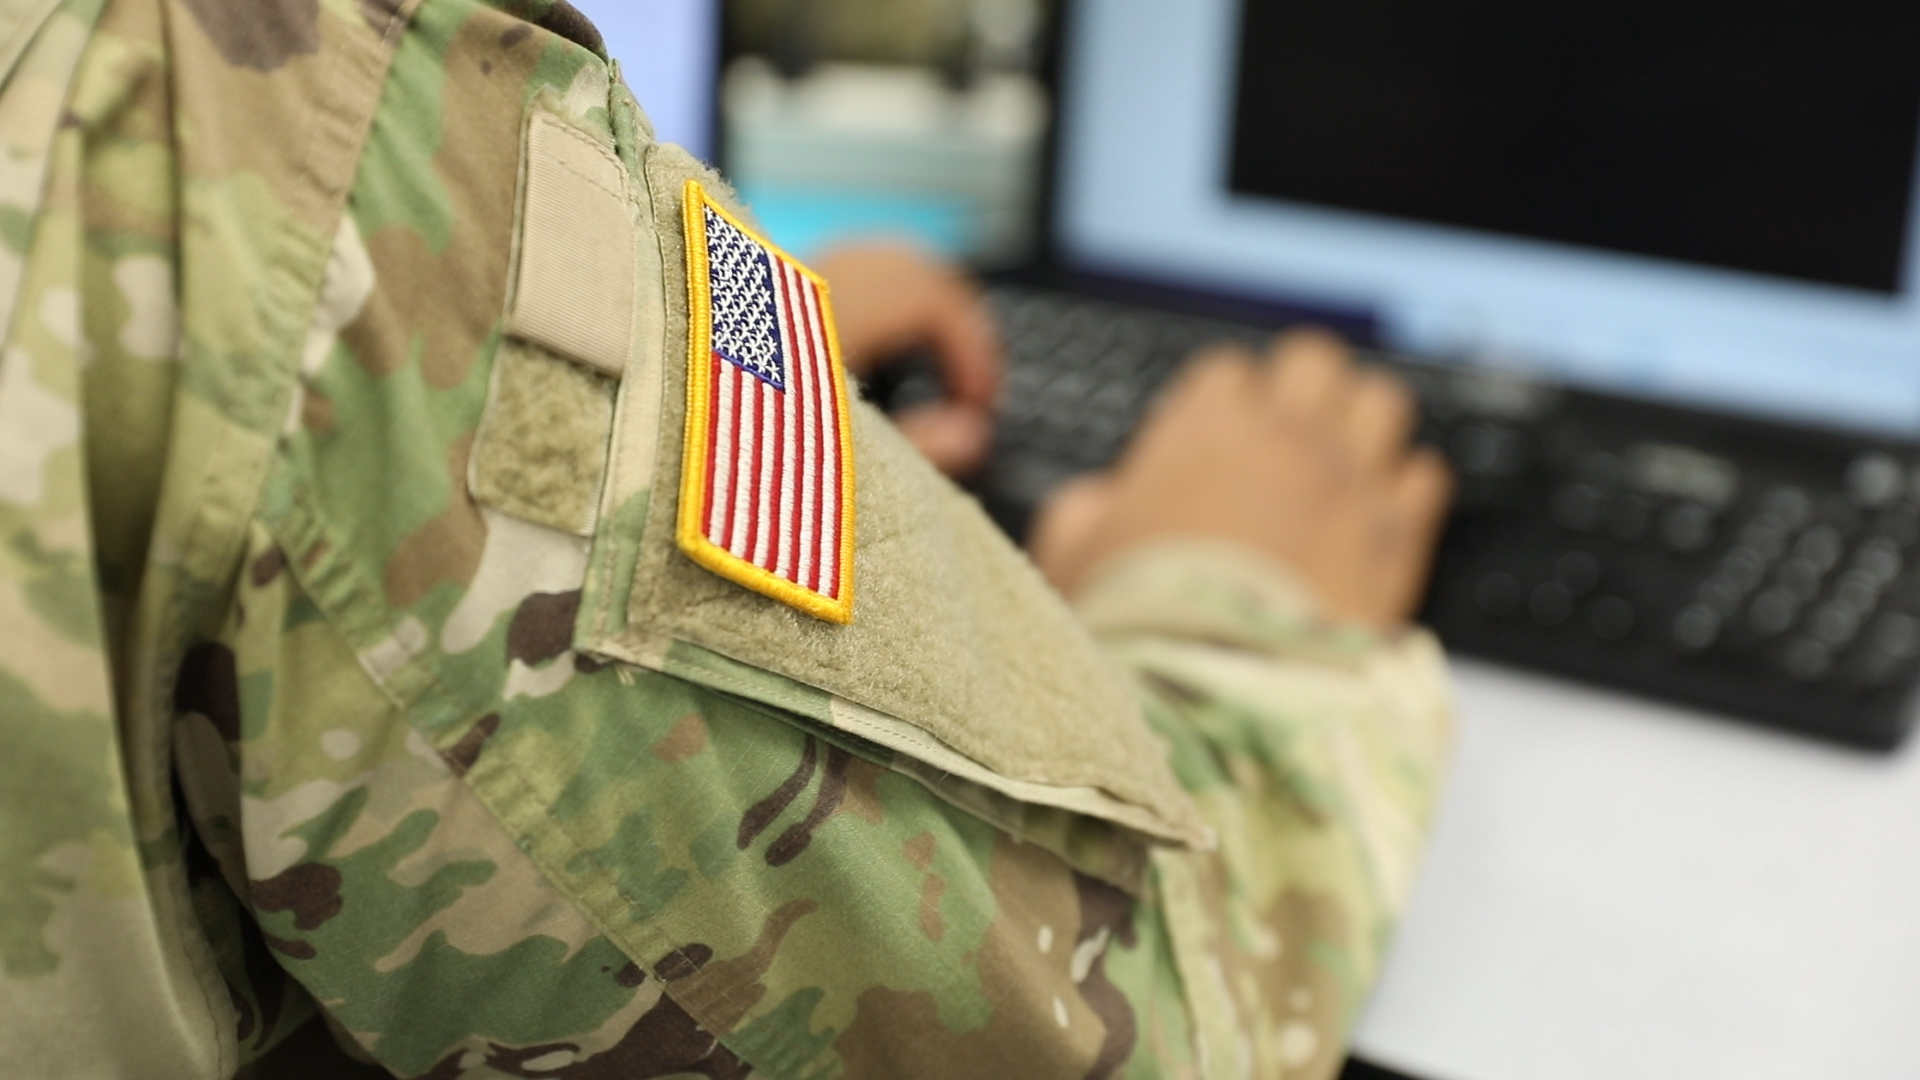 A US Army cadet during a cyber defense exercise.